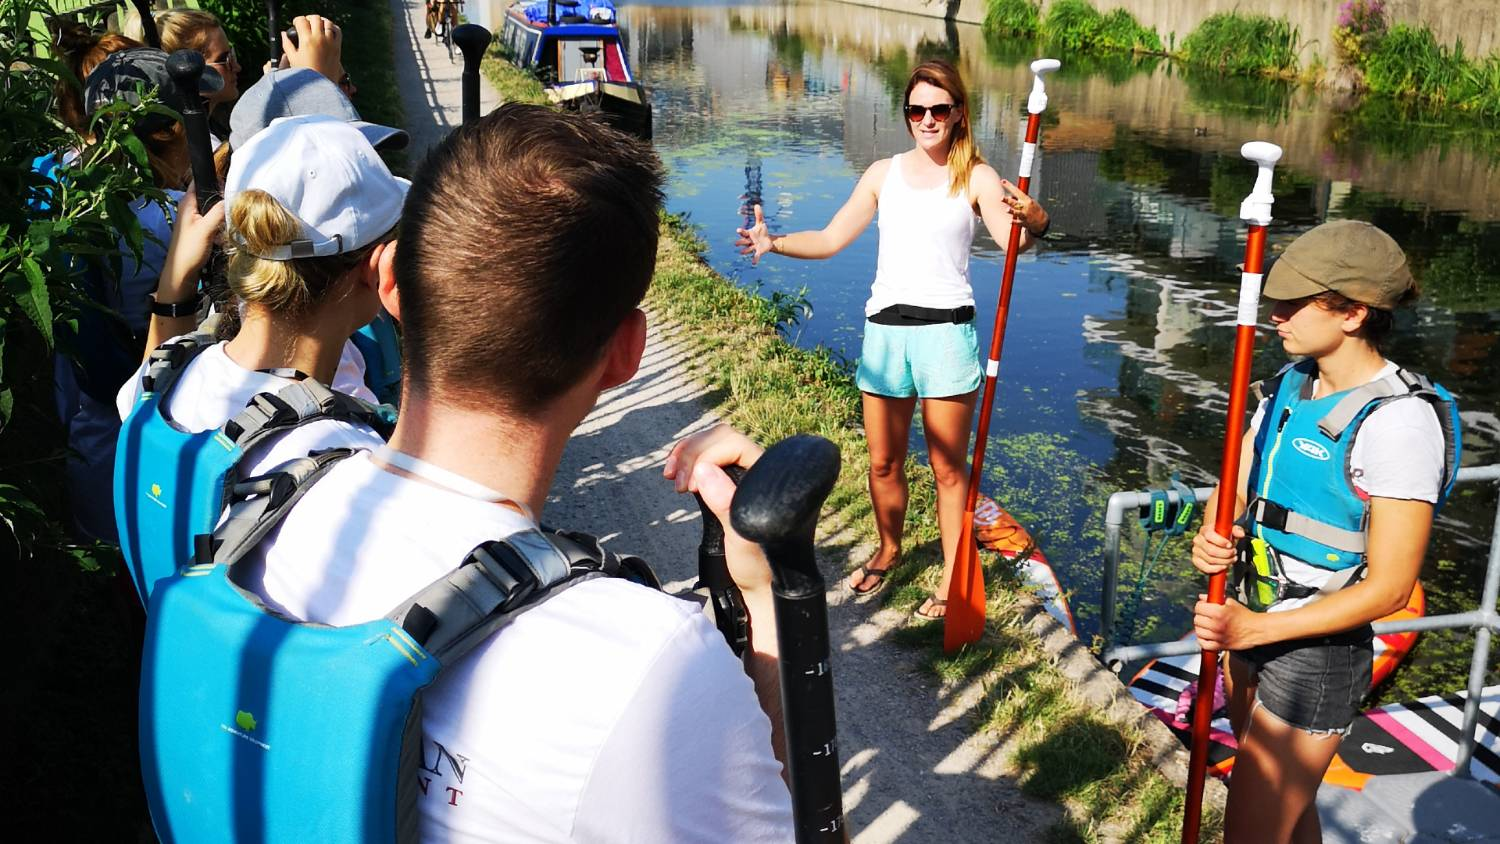 Group of people being briefed on the edge of the canal before a paddle board clean up with Plastic Patrol